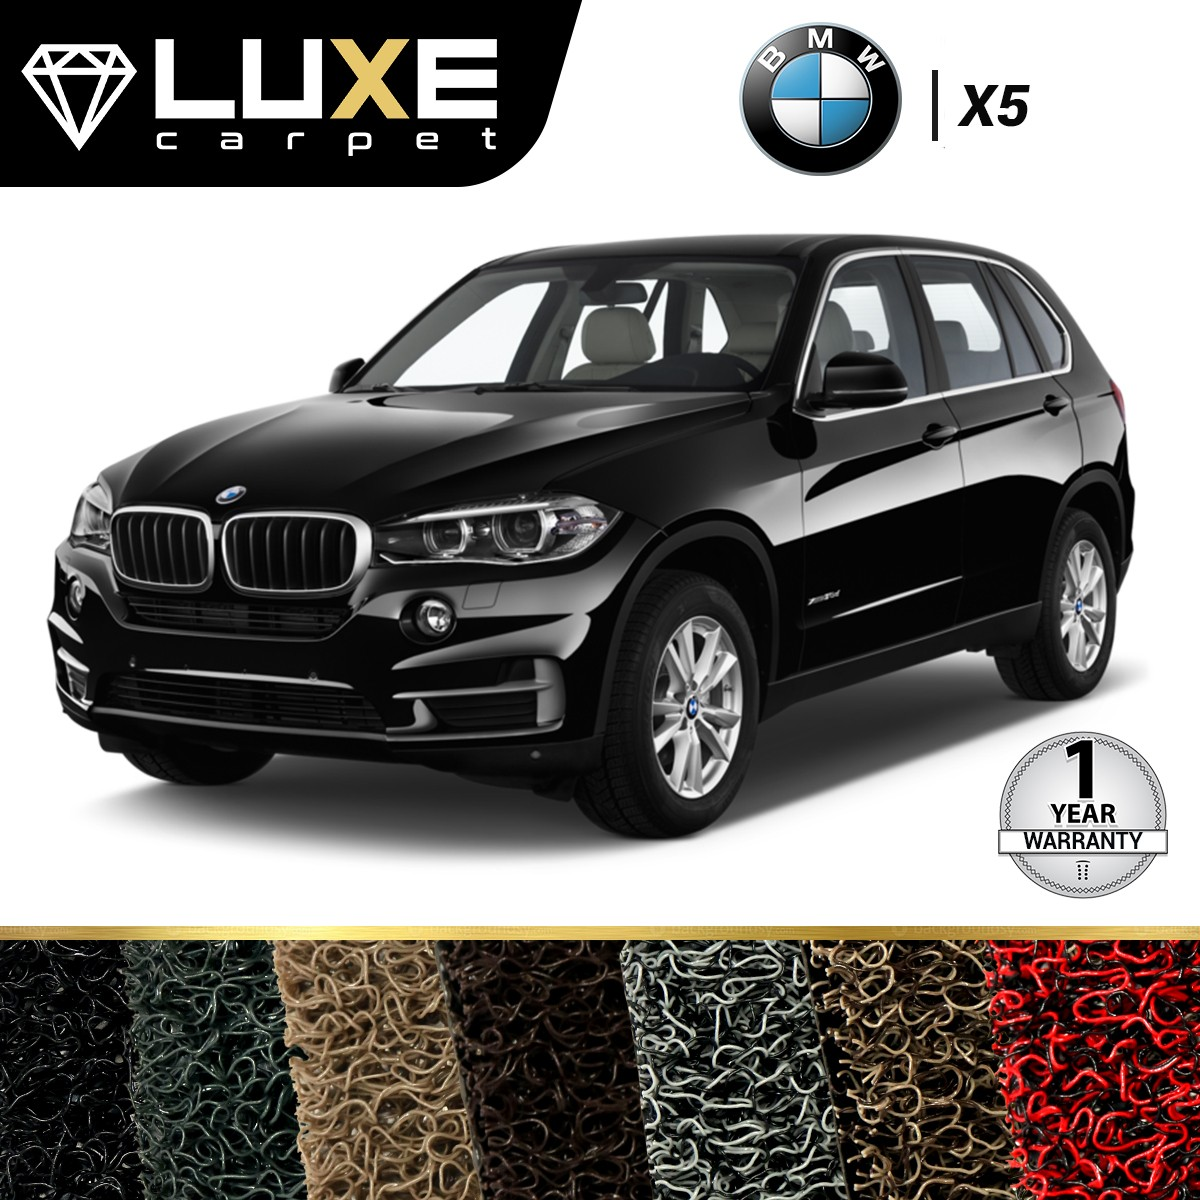 KARPET LUXE BMW X5 2013 UP - GOLD SERIES - NON BAGASI